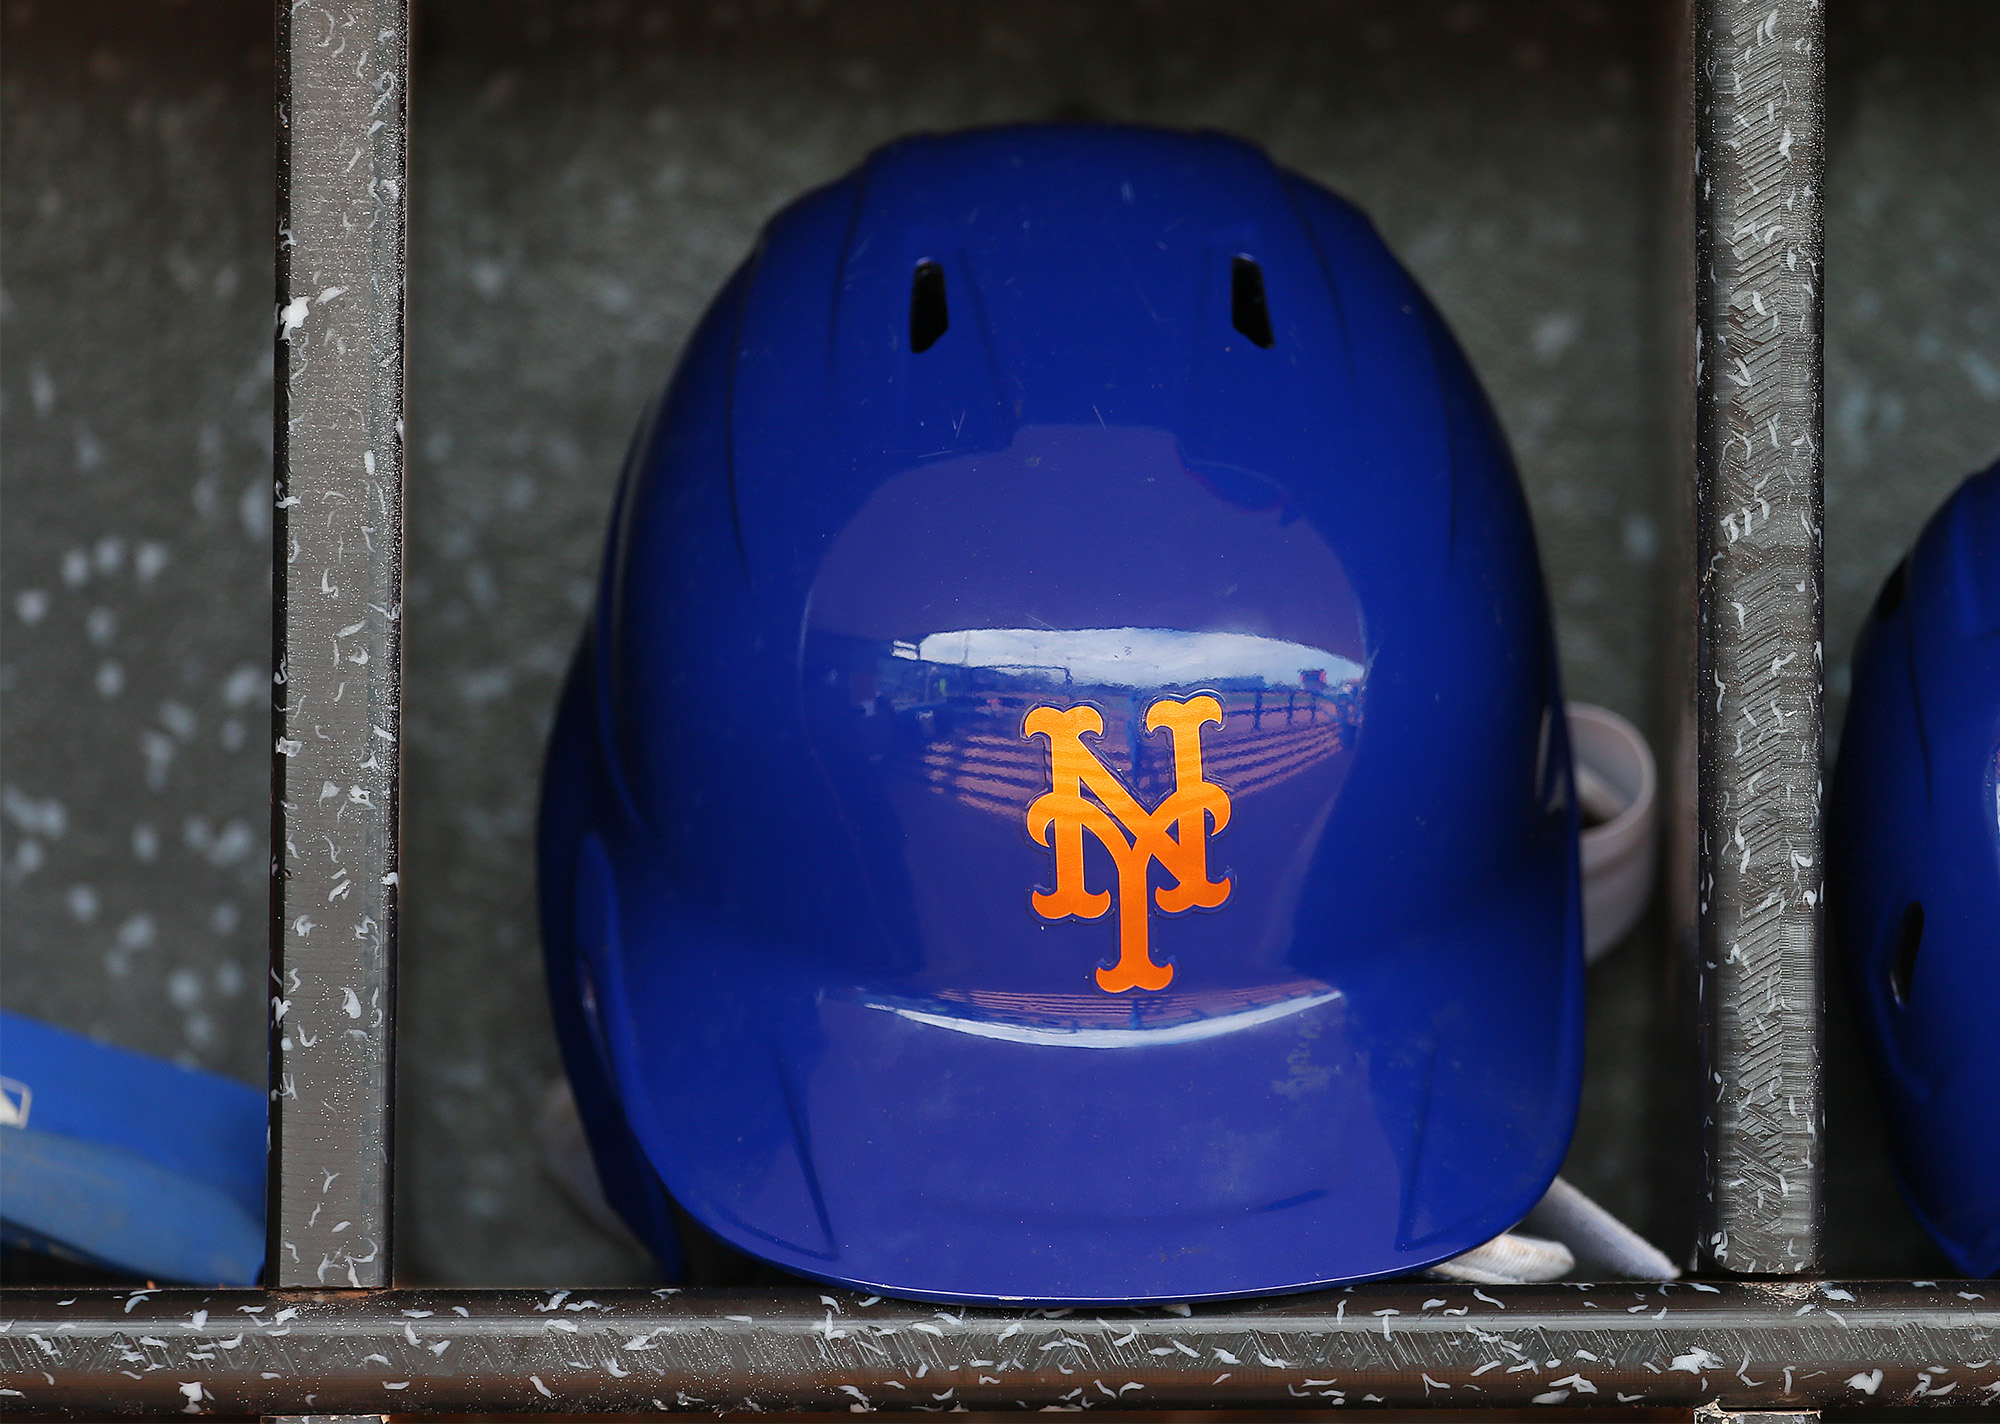 A New York Mets batting helmet in the dugout before a spring training baseball game at Clover Park on March 8, in Port St. Lucie, Florida.